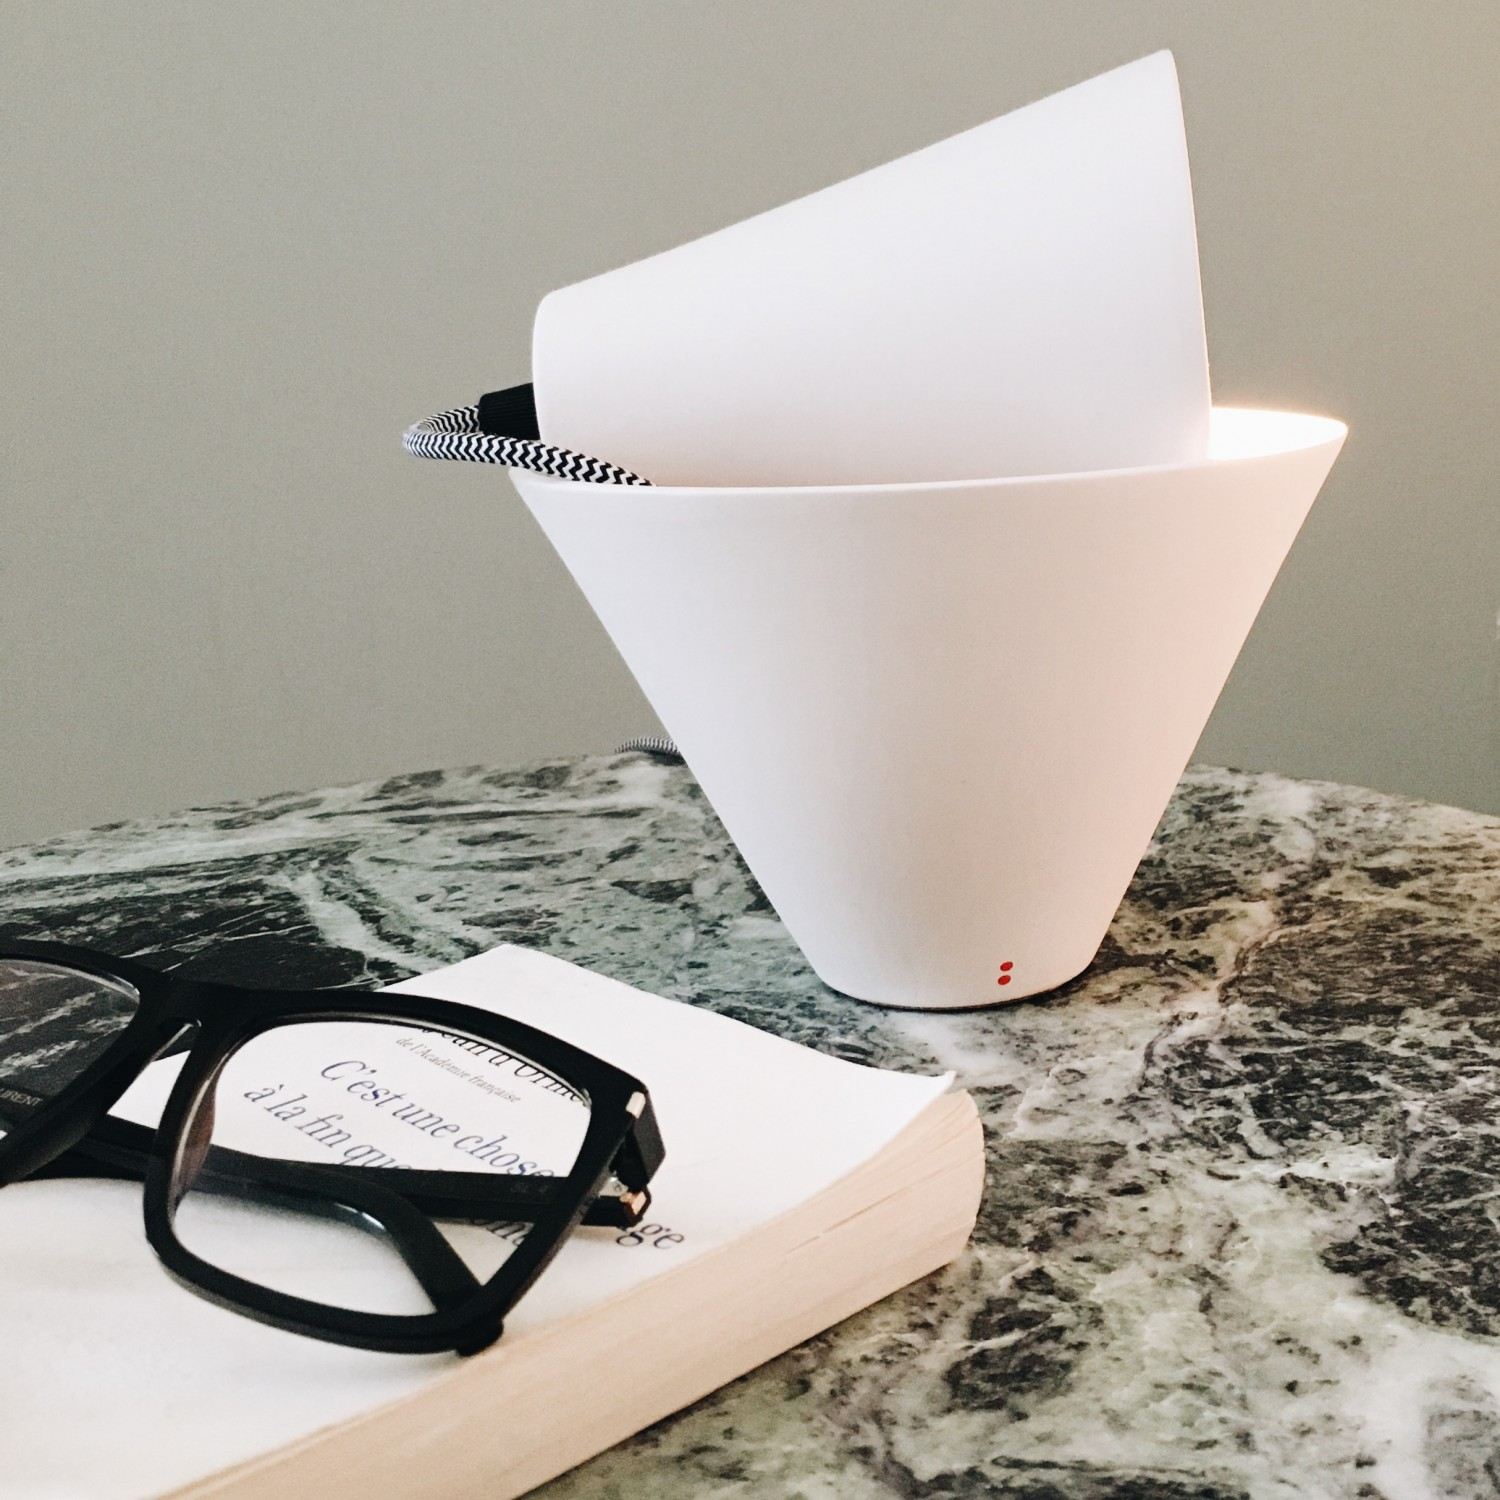 {At Home} Mia Table Lamp by Federica Bubani for Fabbian | Flodeau.com